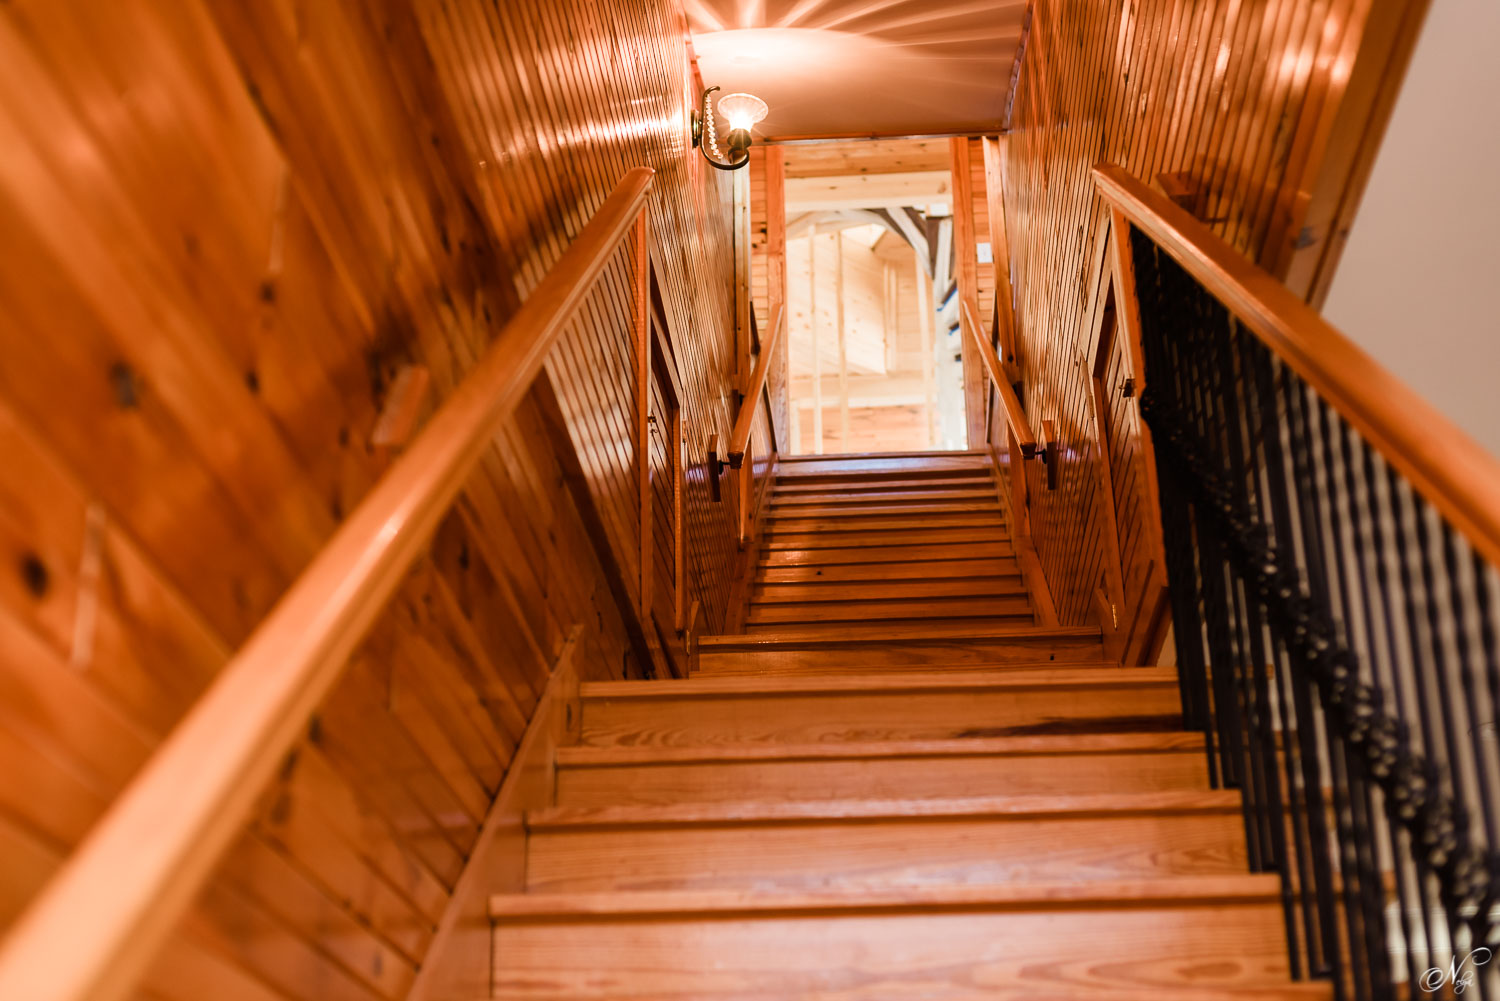 The all wood stairwell to get to the third floor at The Views at Sunset Ridge